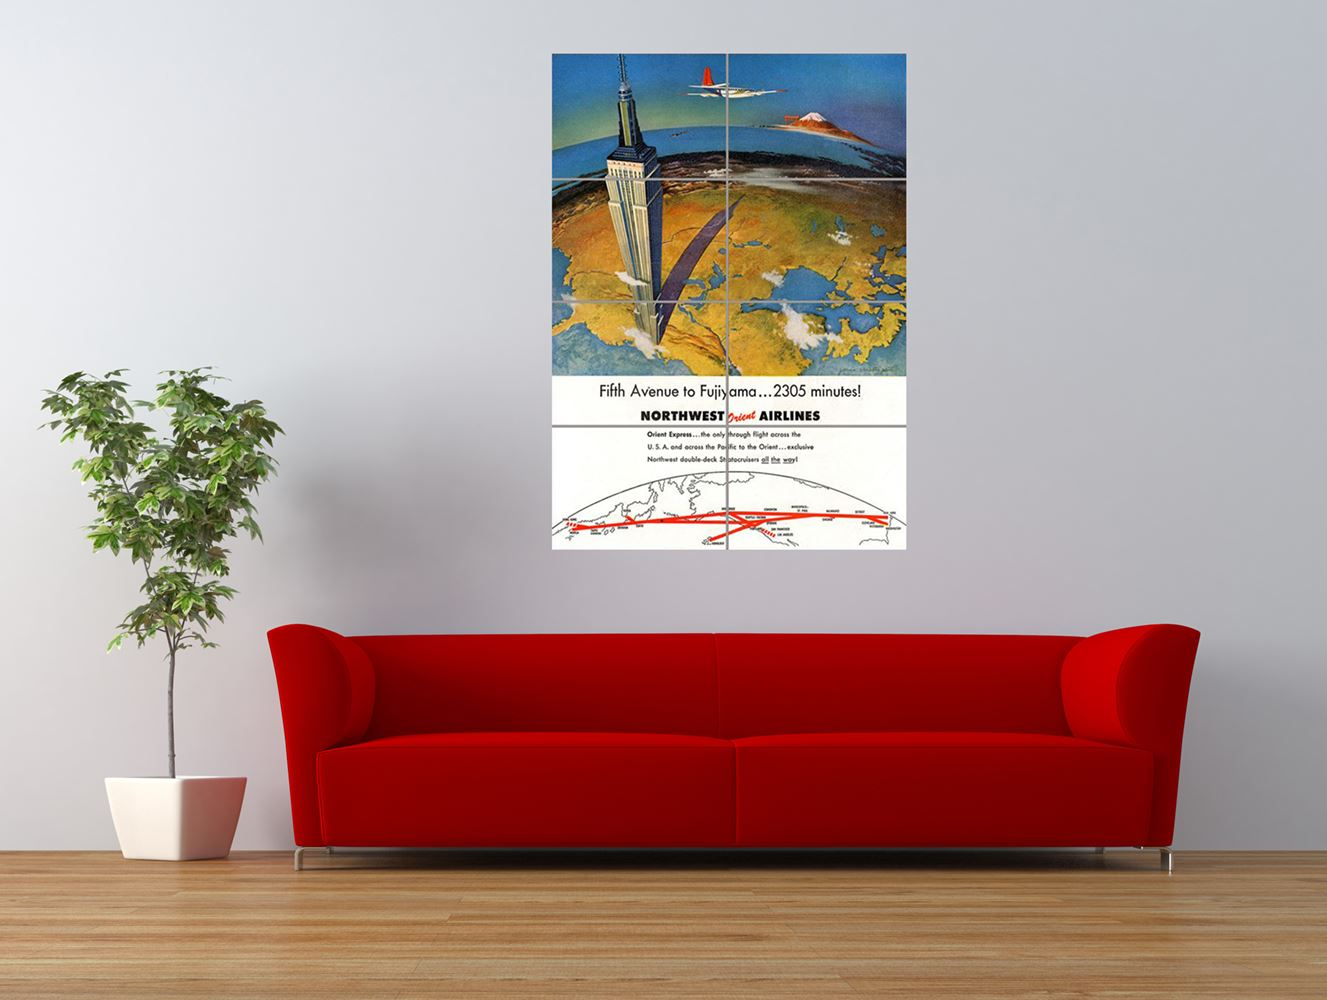 travel mount fuji japan northwest airline giant art print panel poster nor0449 ebay. Black Bedroom Furniture Sets. Home Design Ideas